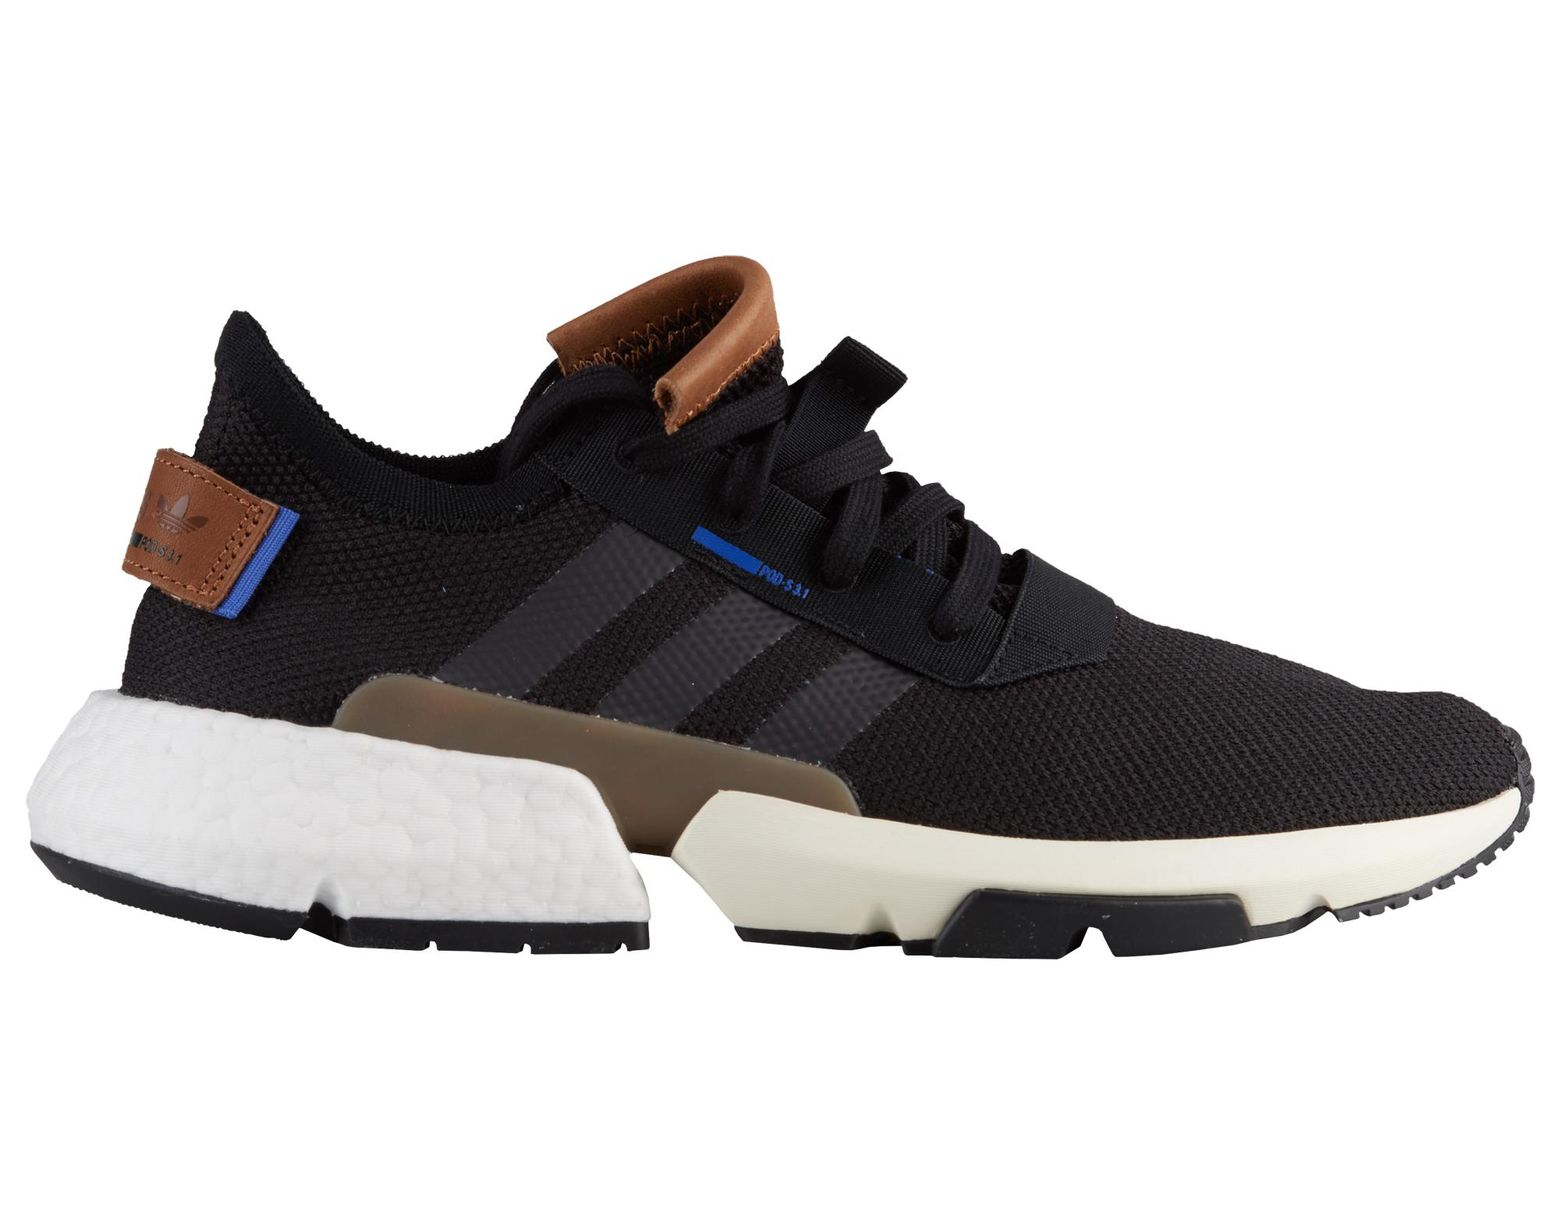 promo code 6cbbf 025dc adidas Originals Pod-s3.1 in Black for Men - Lyst